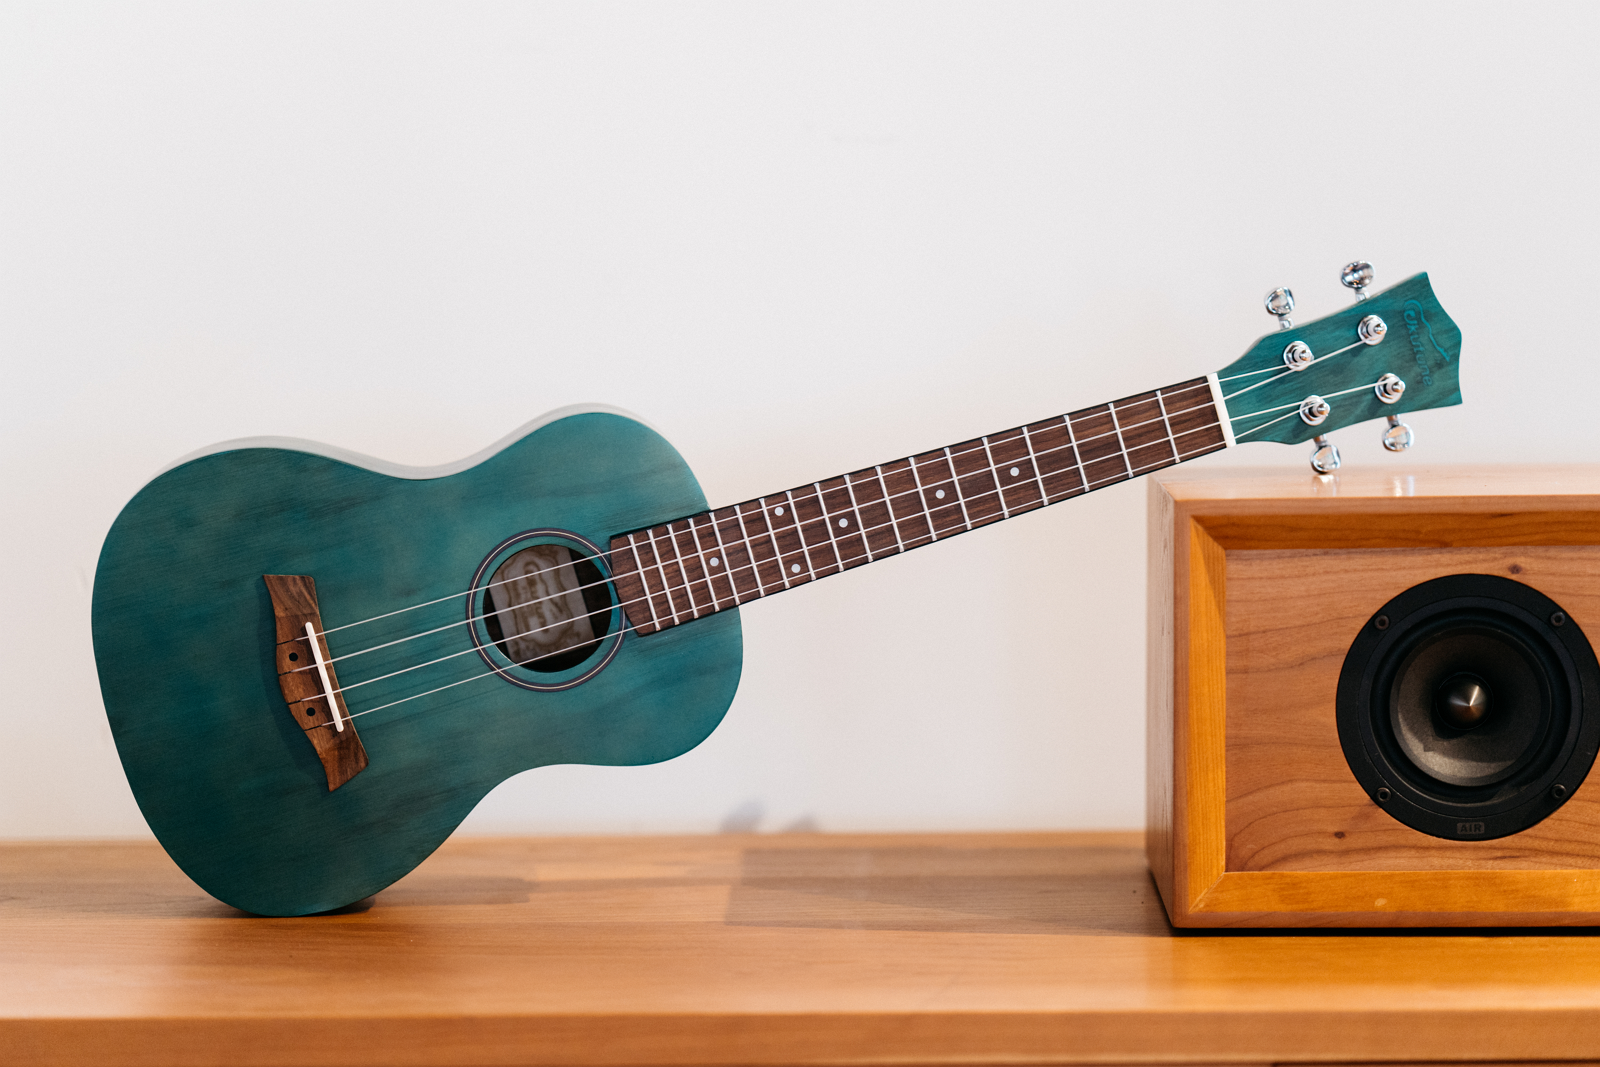 Top 10 Reasons to Buy and Learn to Play the Ukulele